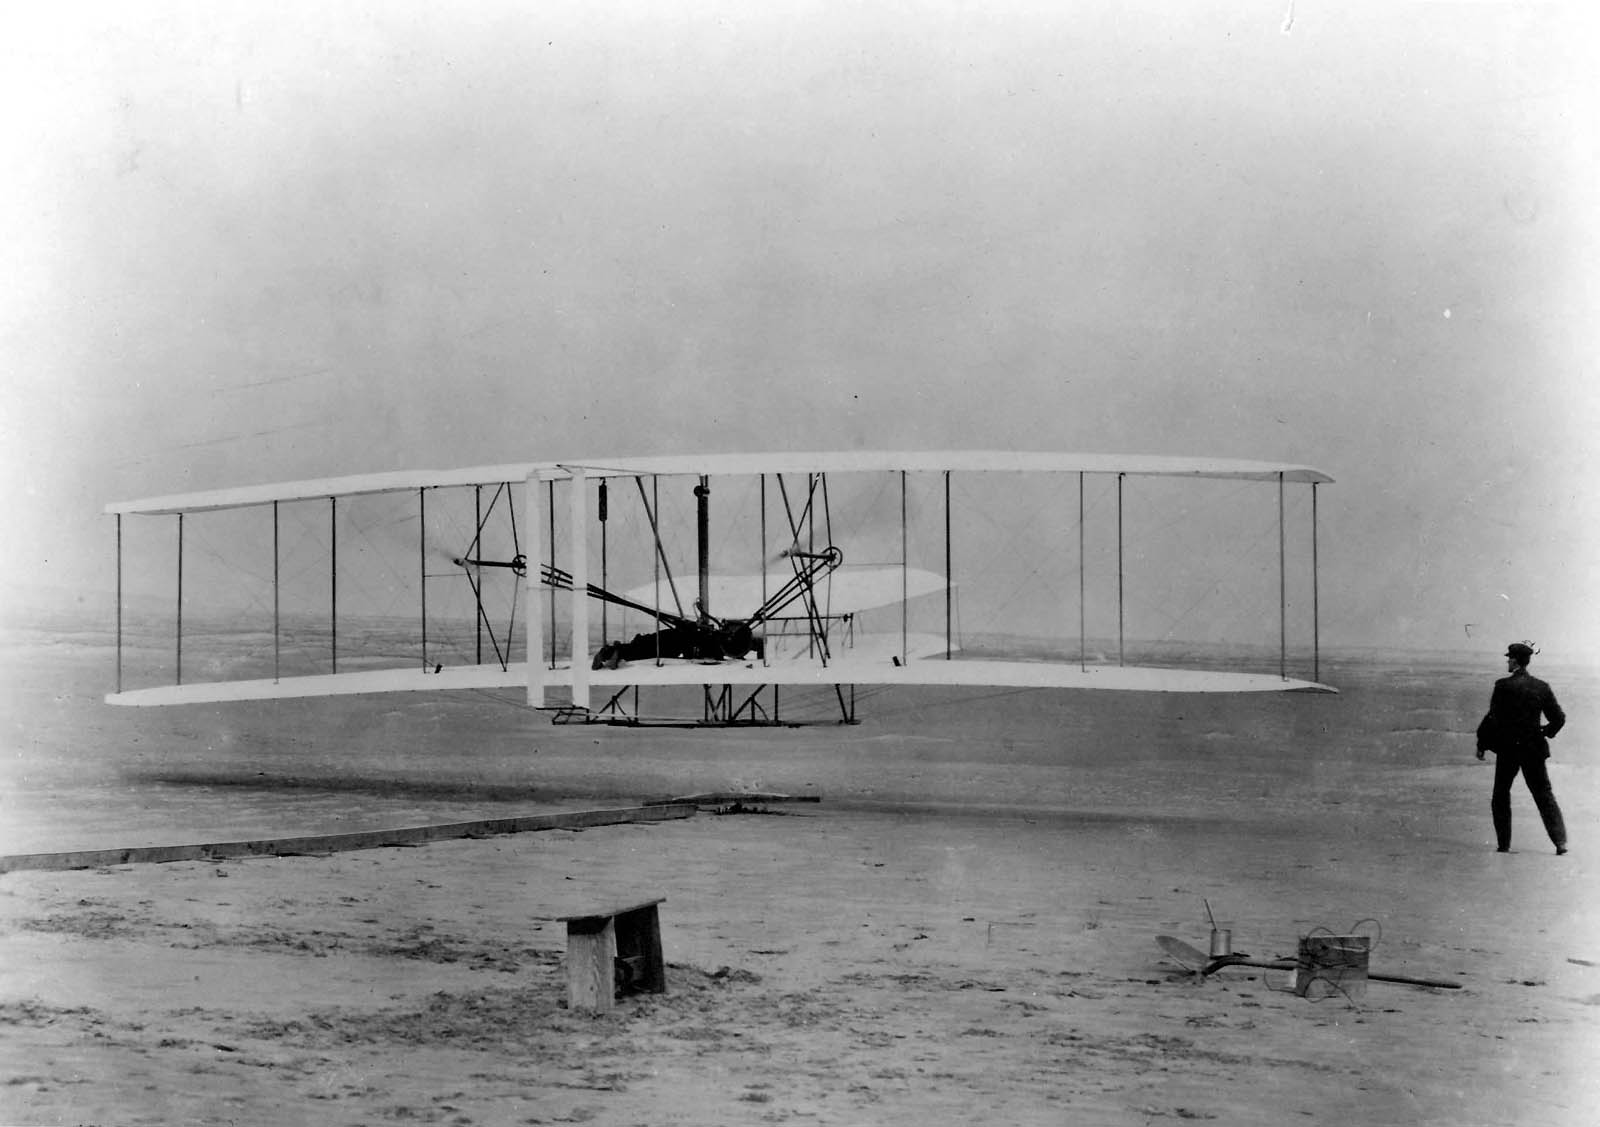 Vol du 17 Décembre 1903 des Frères Wright à Kitty-Hawk (Caroline du Nord) - Domaine public - John T. Daniels — U.S. Air Force photo First Flight